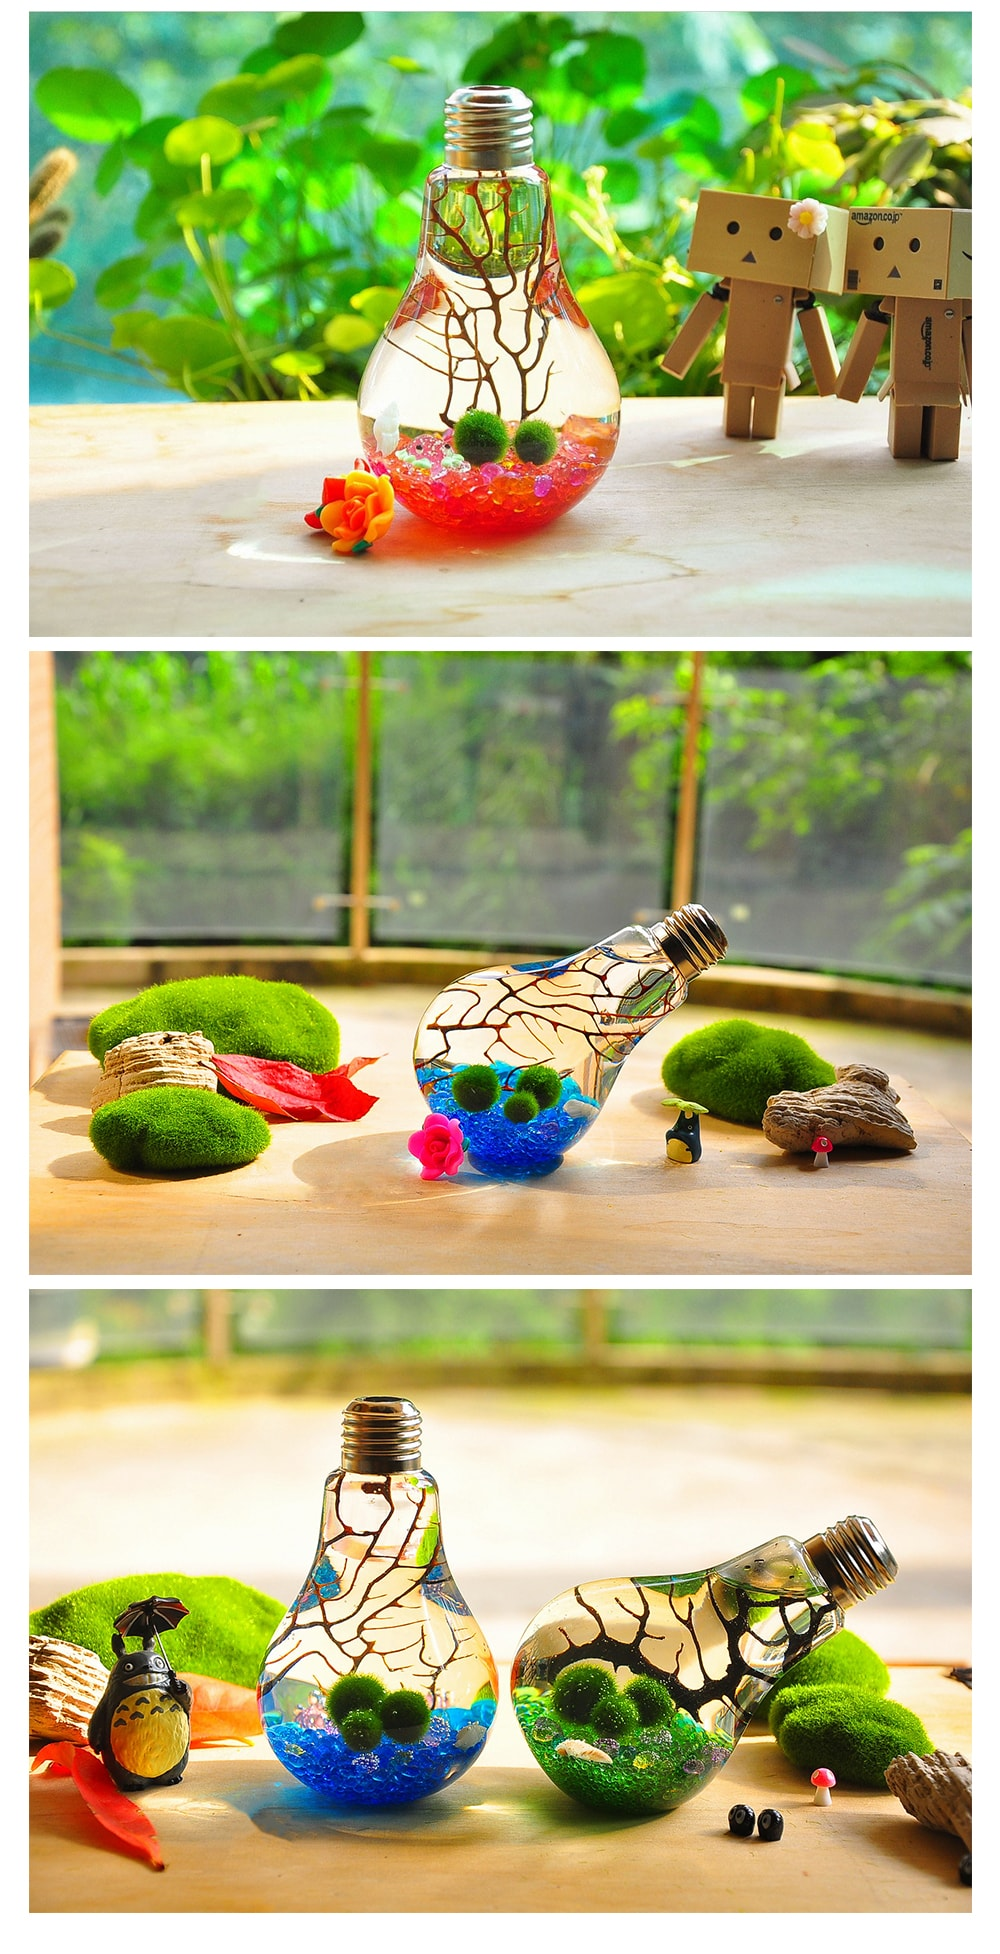 Marimo Bulb Terrarium Bring Zen to the Den